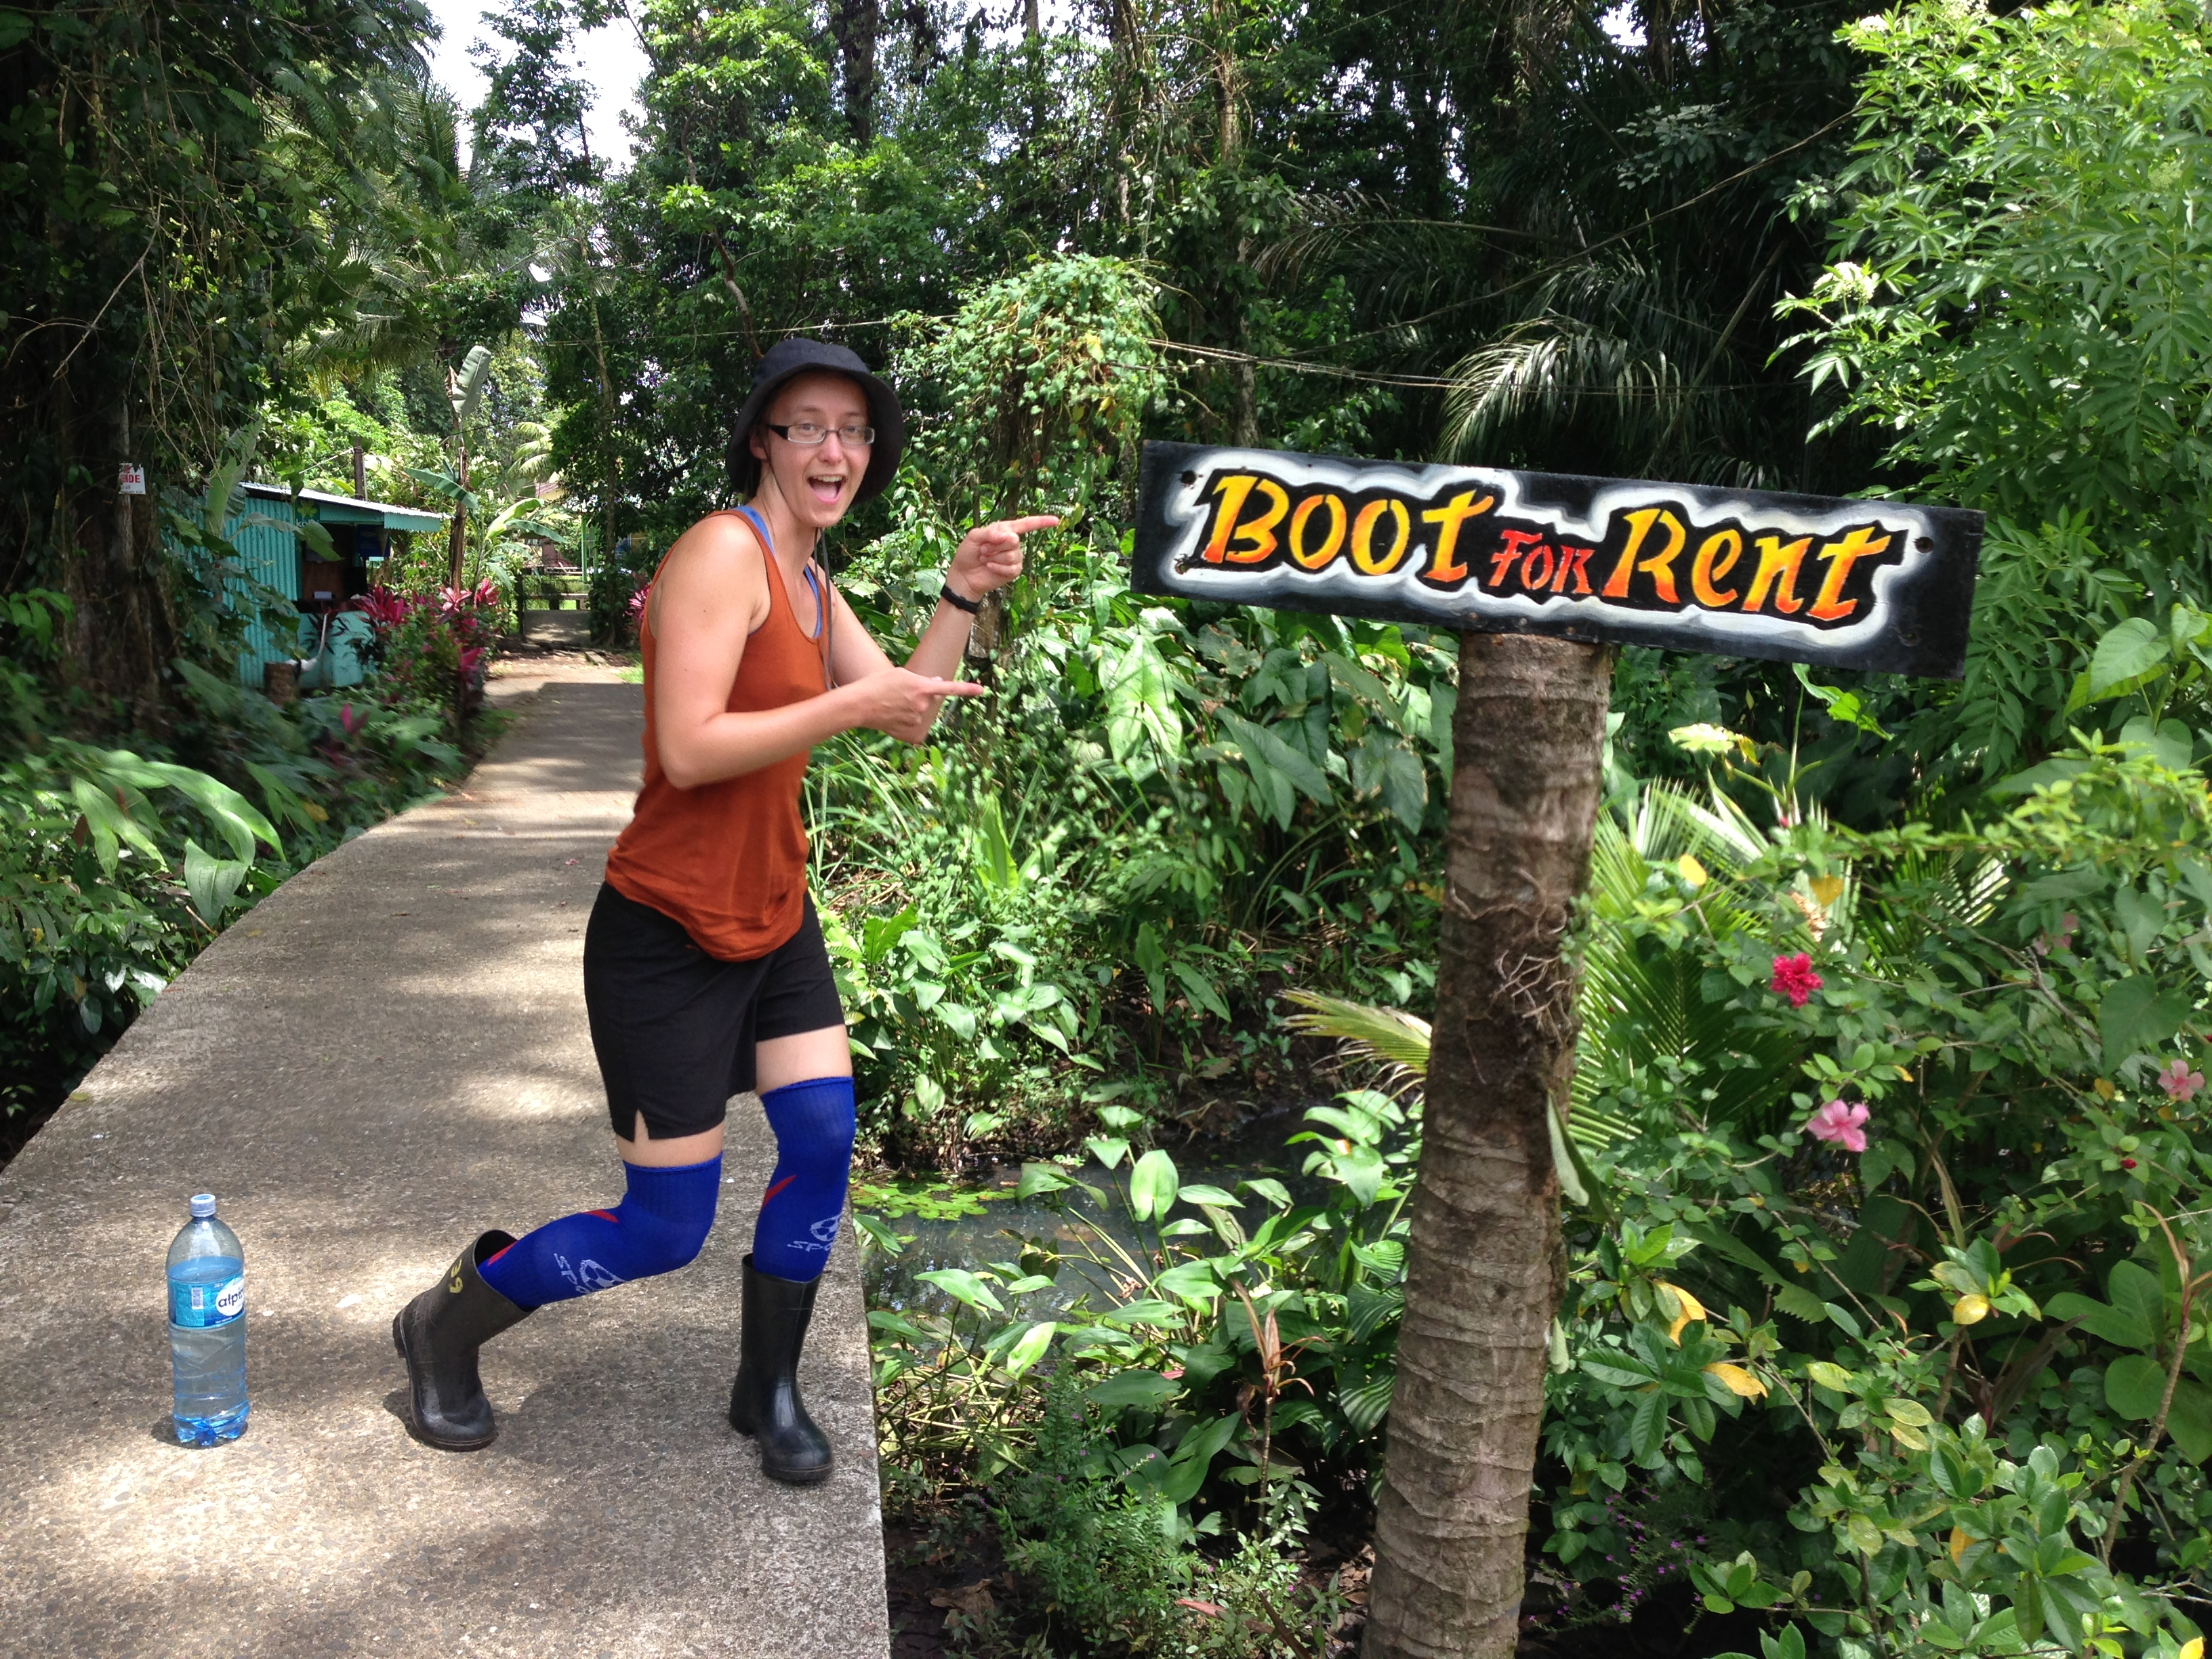 Costa in hiking rica what to wear recommend dress in winter in 2019